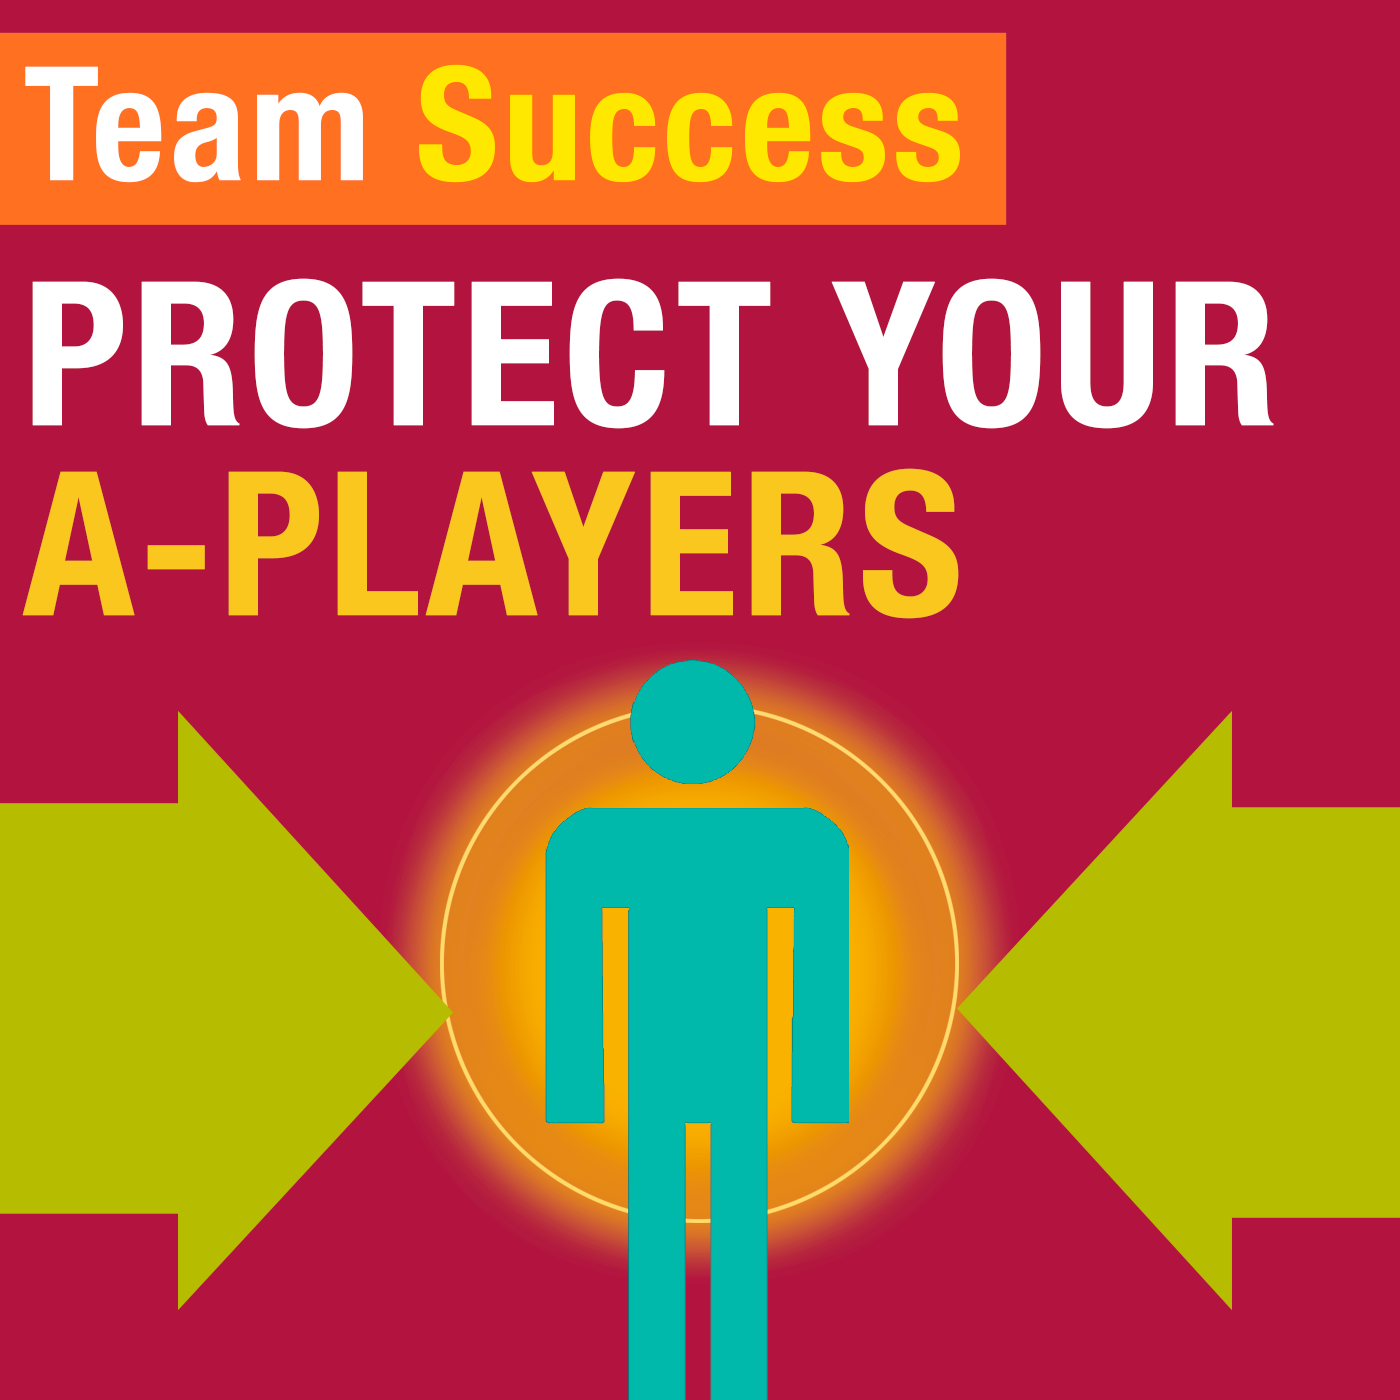 Protect Your A-Players